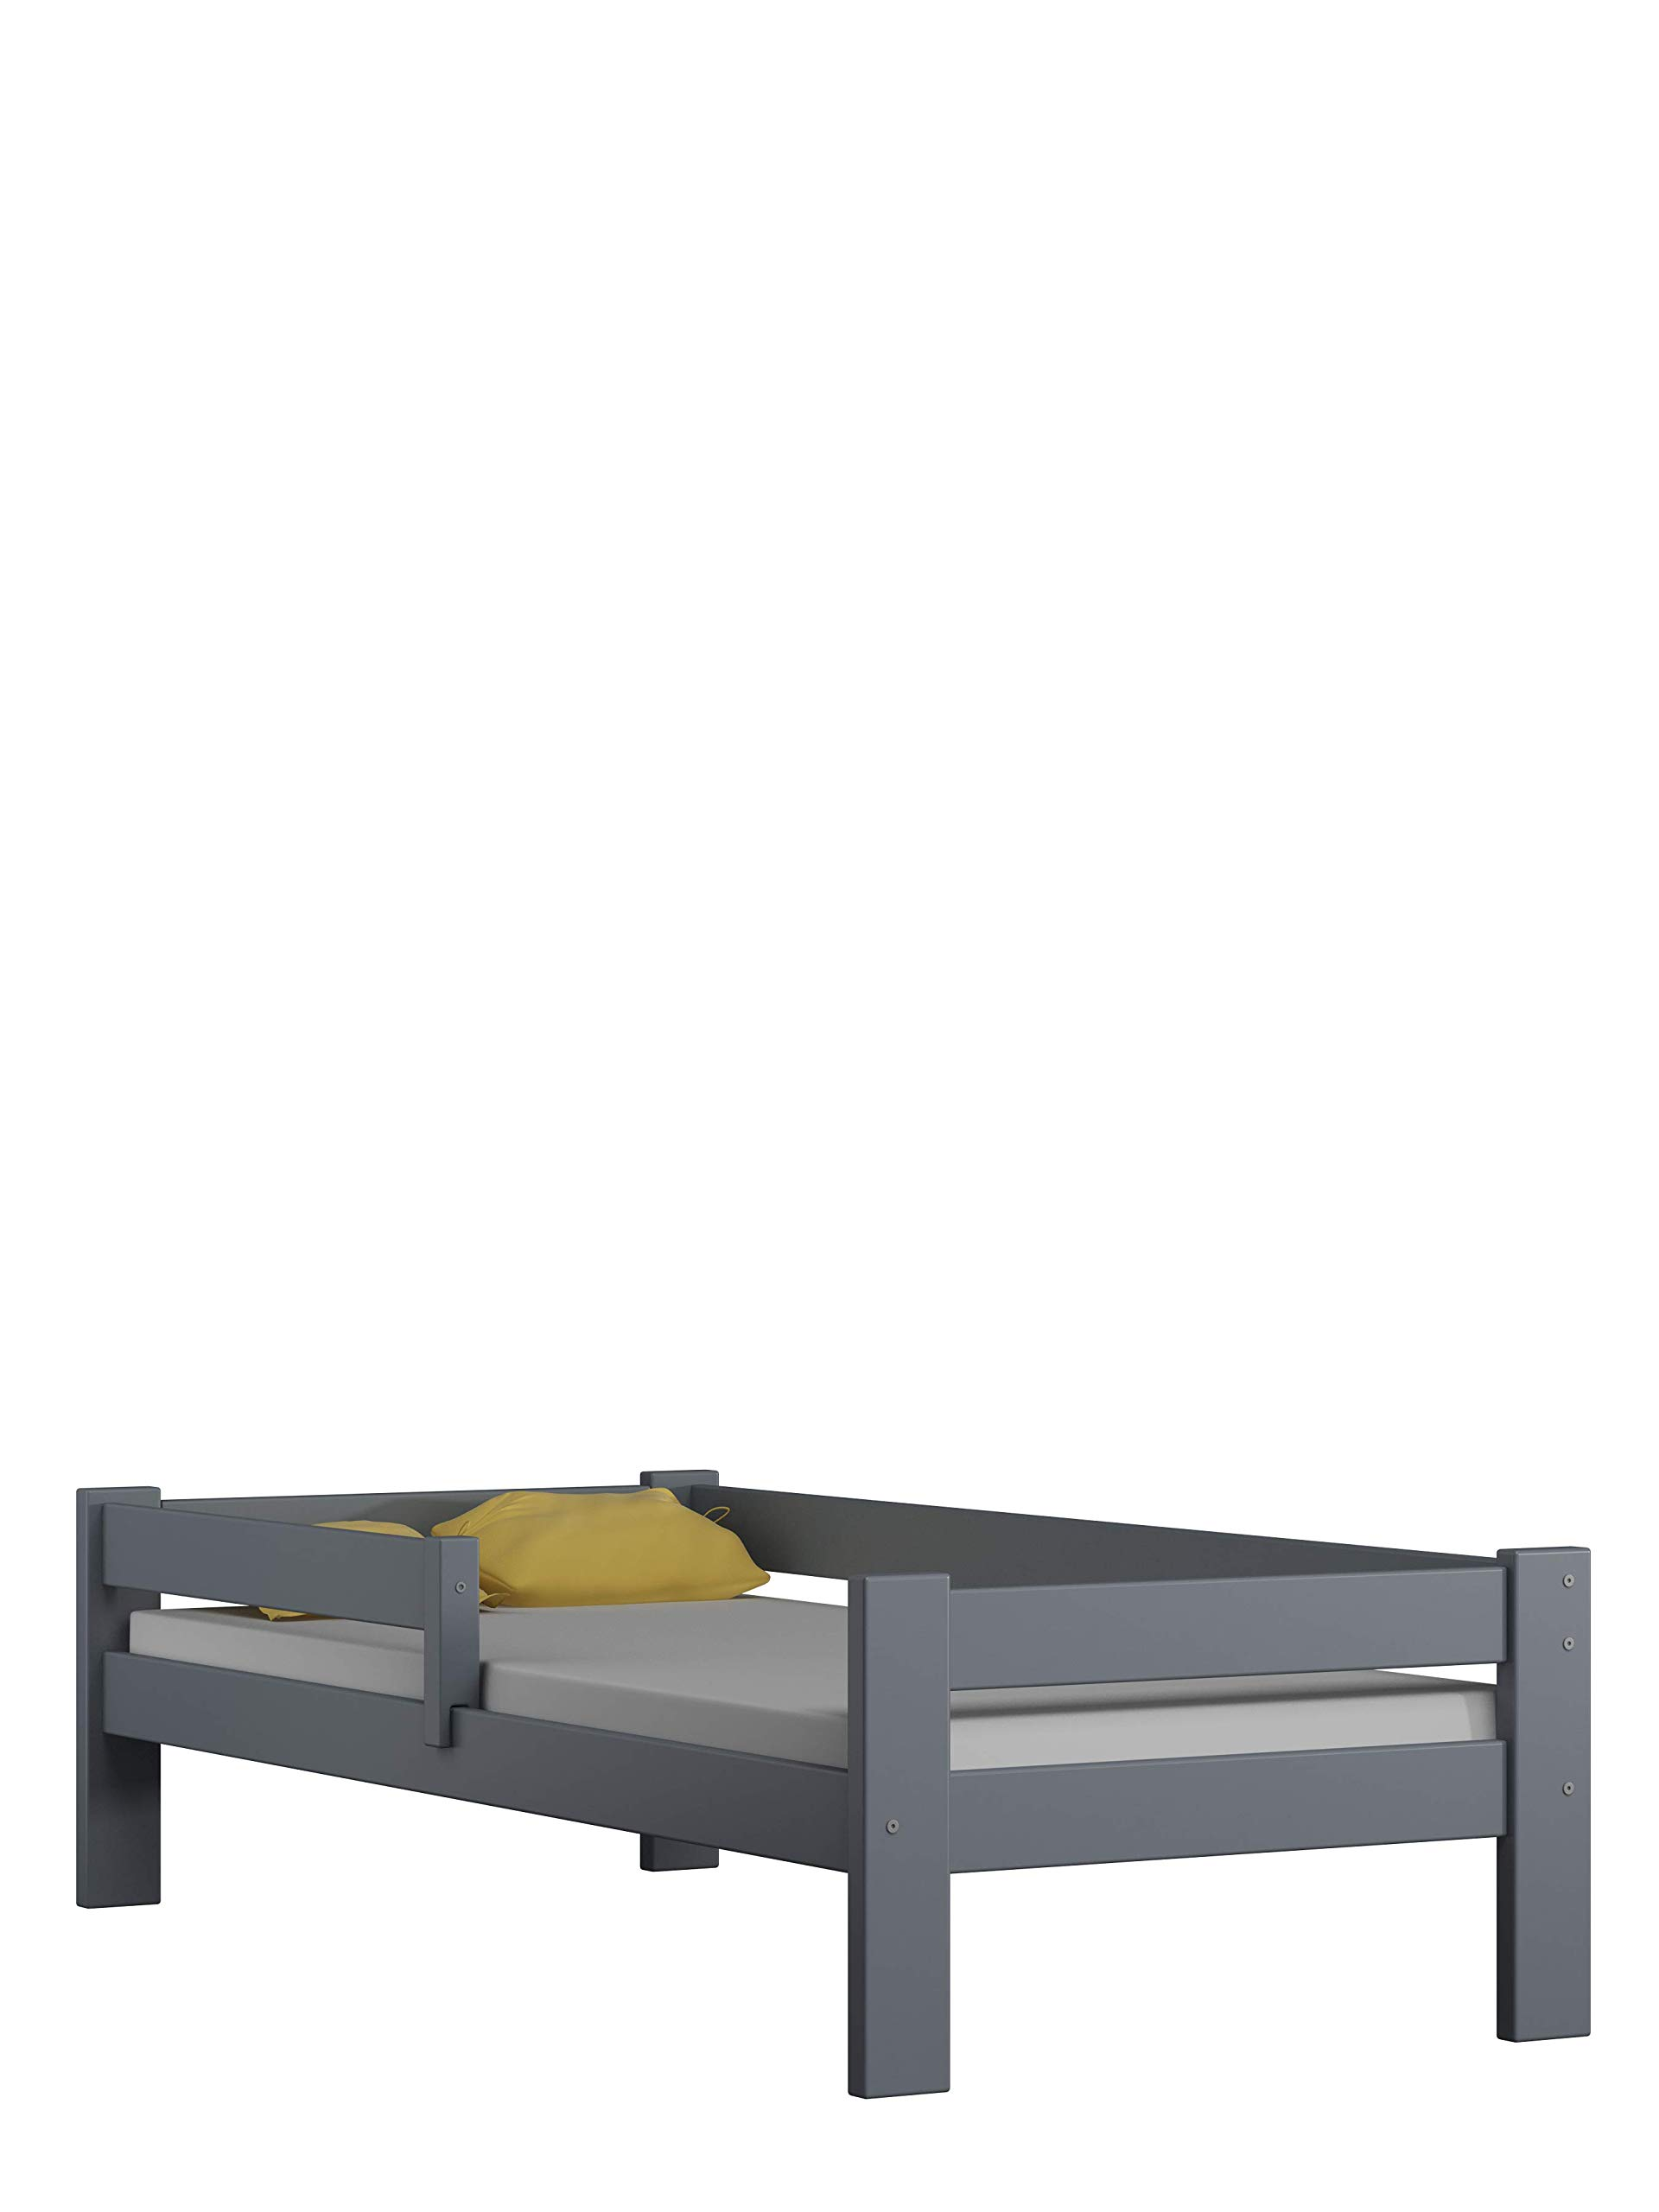 Children's Beds Home Solid Pine Wood Single Bed - Willow comes with Foam Mattress no Drawers Included (160x80, Grey) Children's Beds Home Internal Dimensions in cm's are 140x70, 160x80, 180x80, 180x90, 190x90, 200x90 (External: 147x78, 167x88, 187x88, 187x98, 197x98, 207x98) Total height up to the top of the safety barrier is 51cm Universal bed entrance - left or right side. Front barrier can also be removed at a later stage. Bed Frame has load capacity of up to 190kg 1